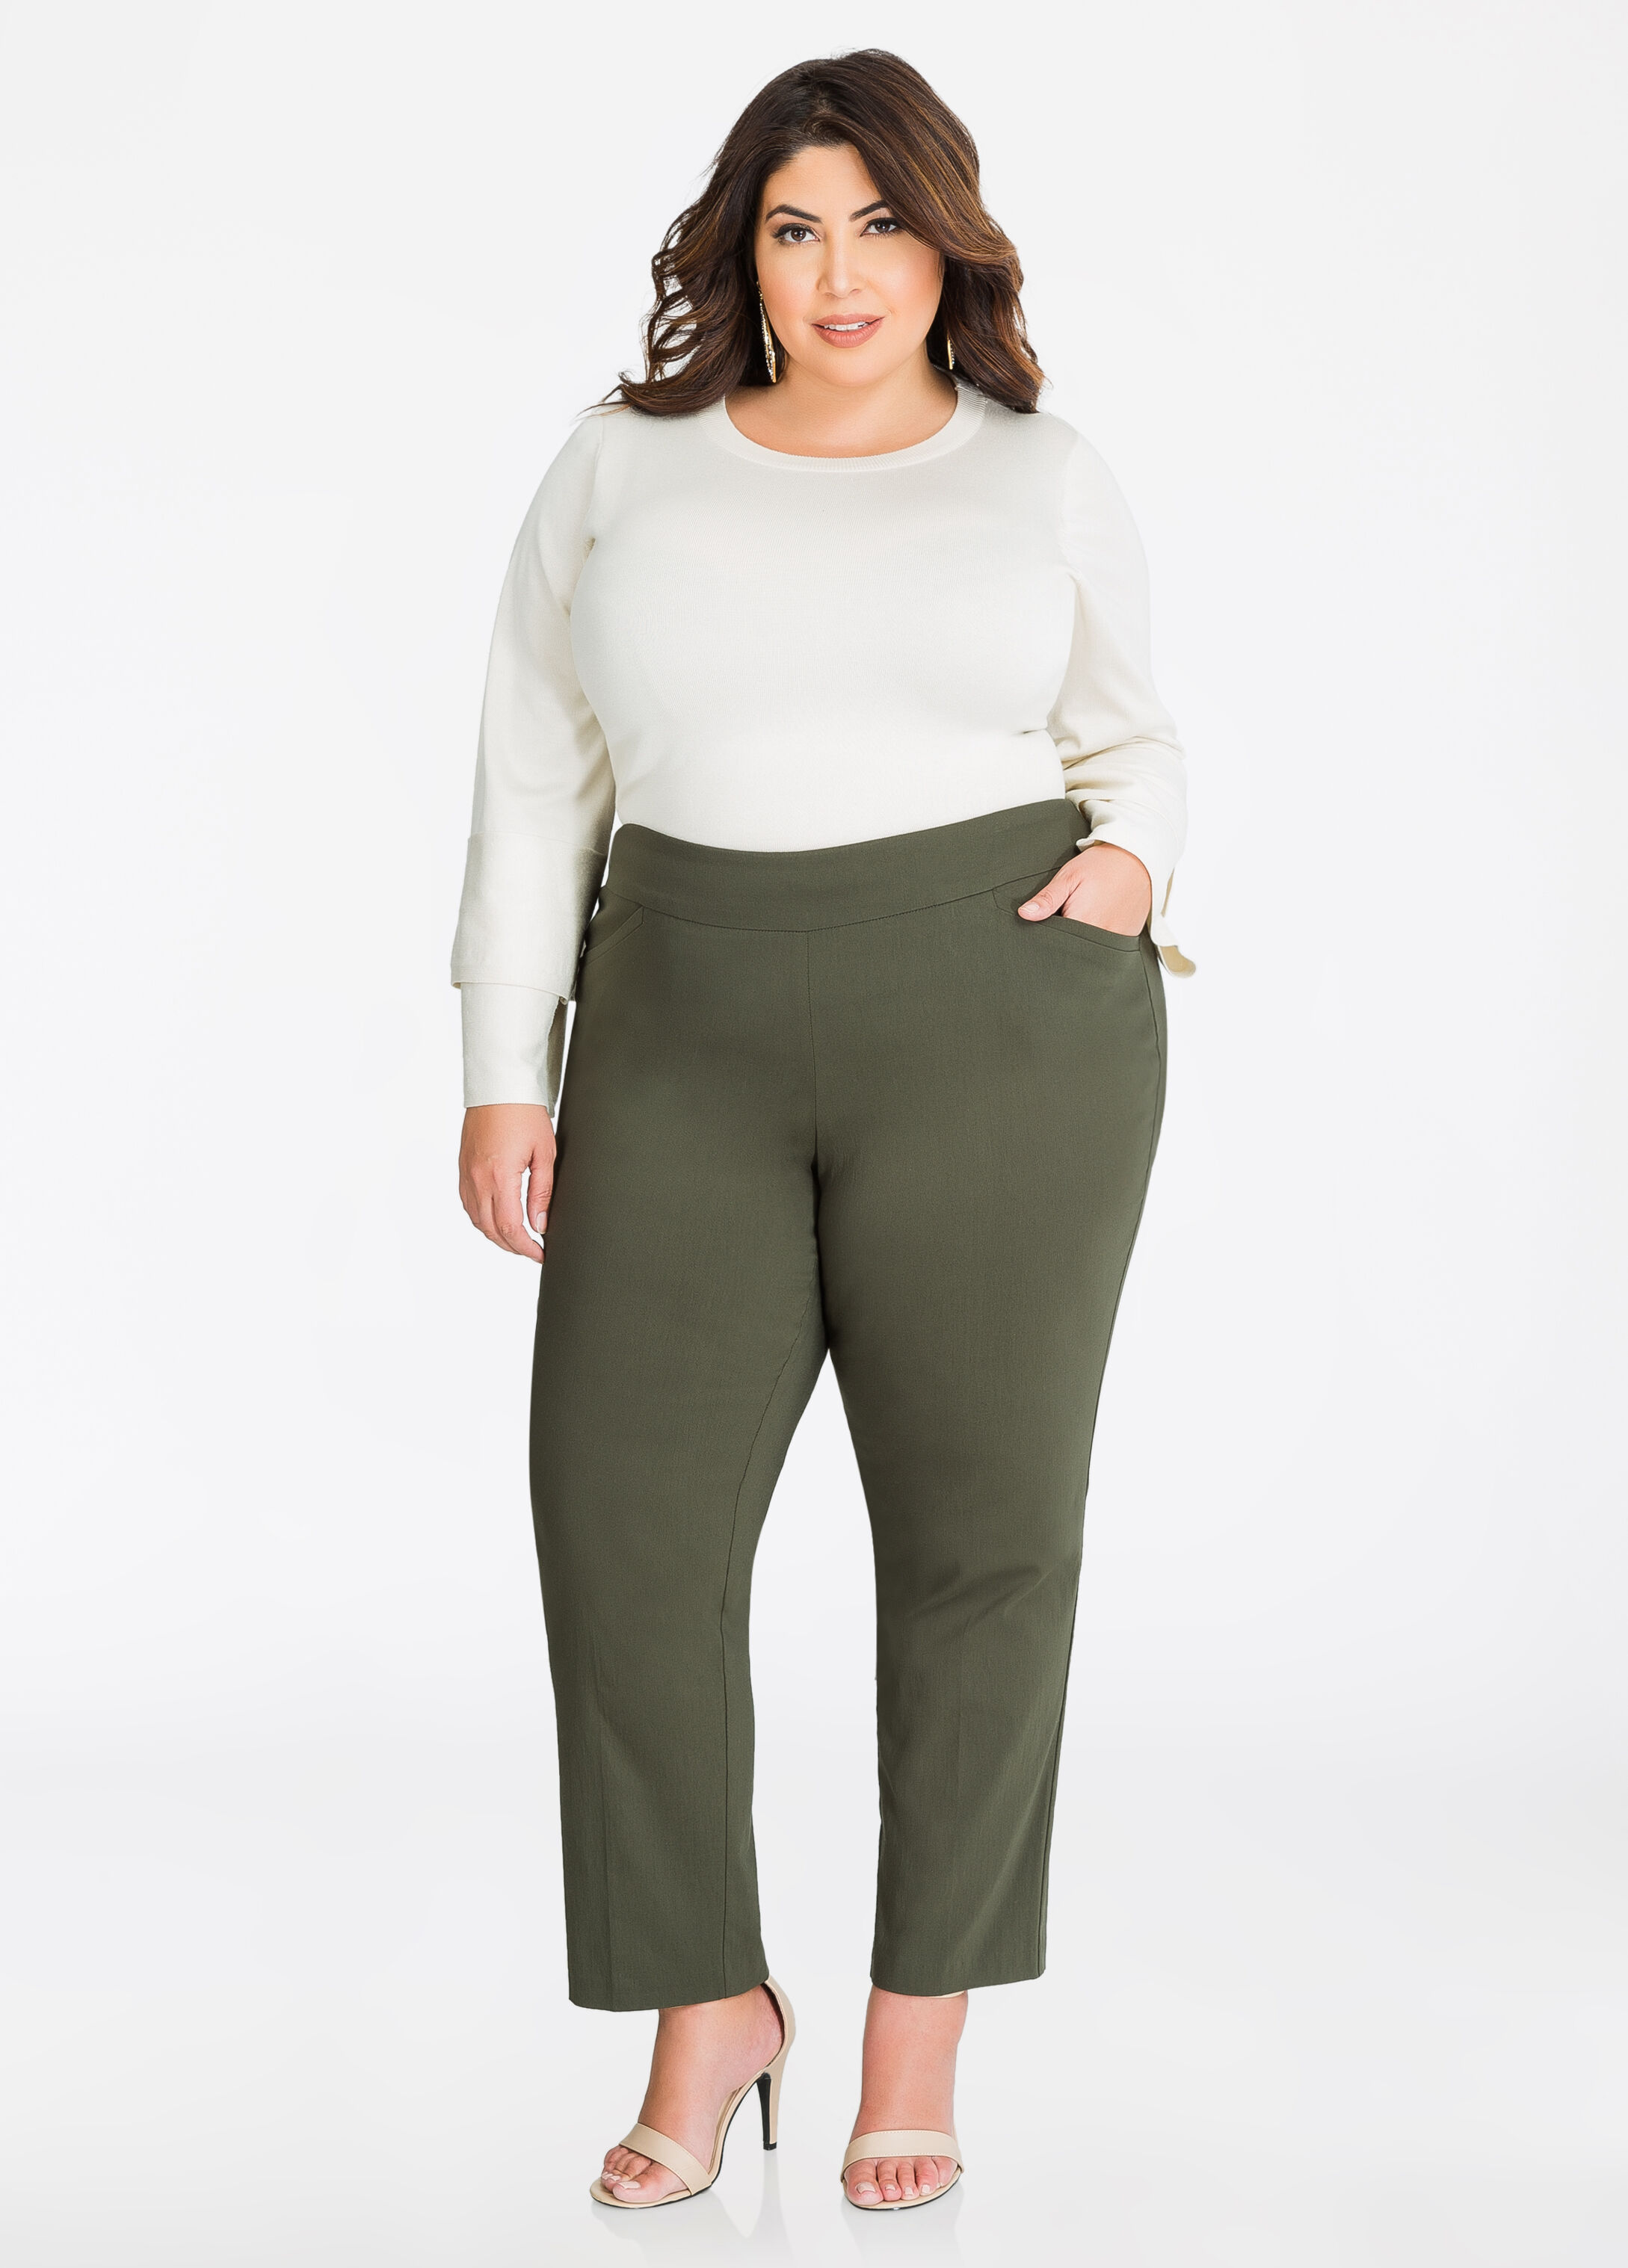 Fit Solution Super Stretch Ankle Pant